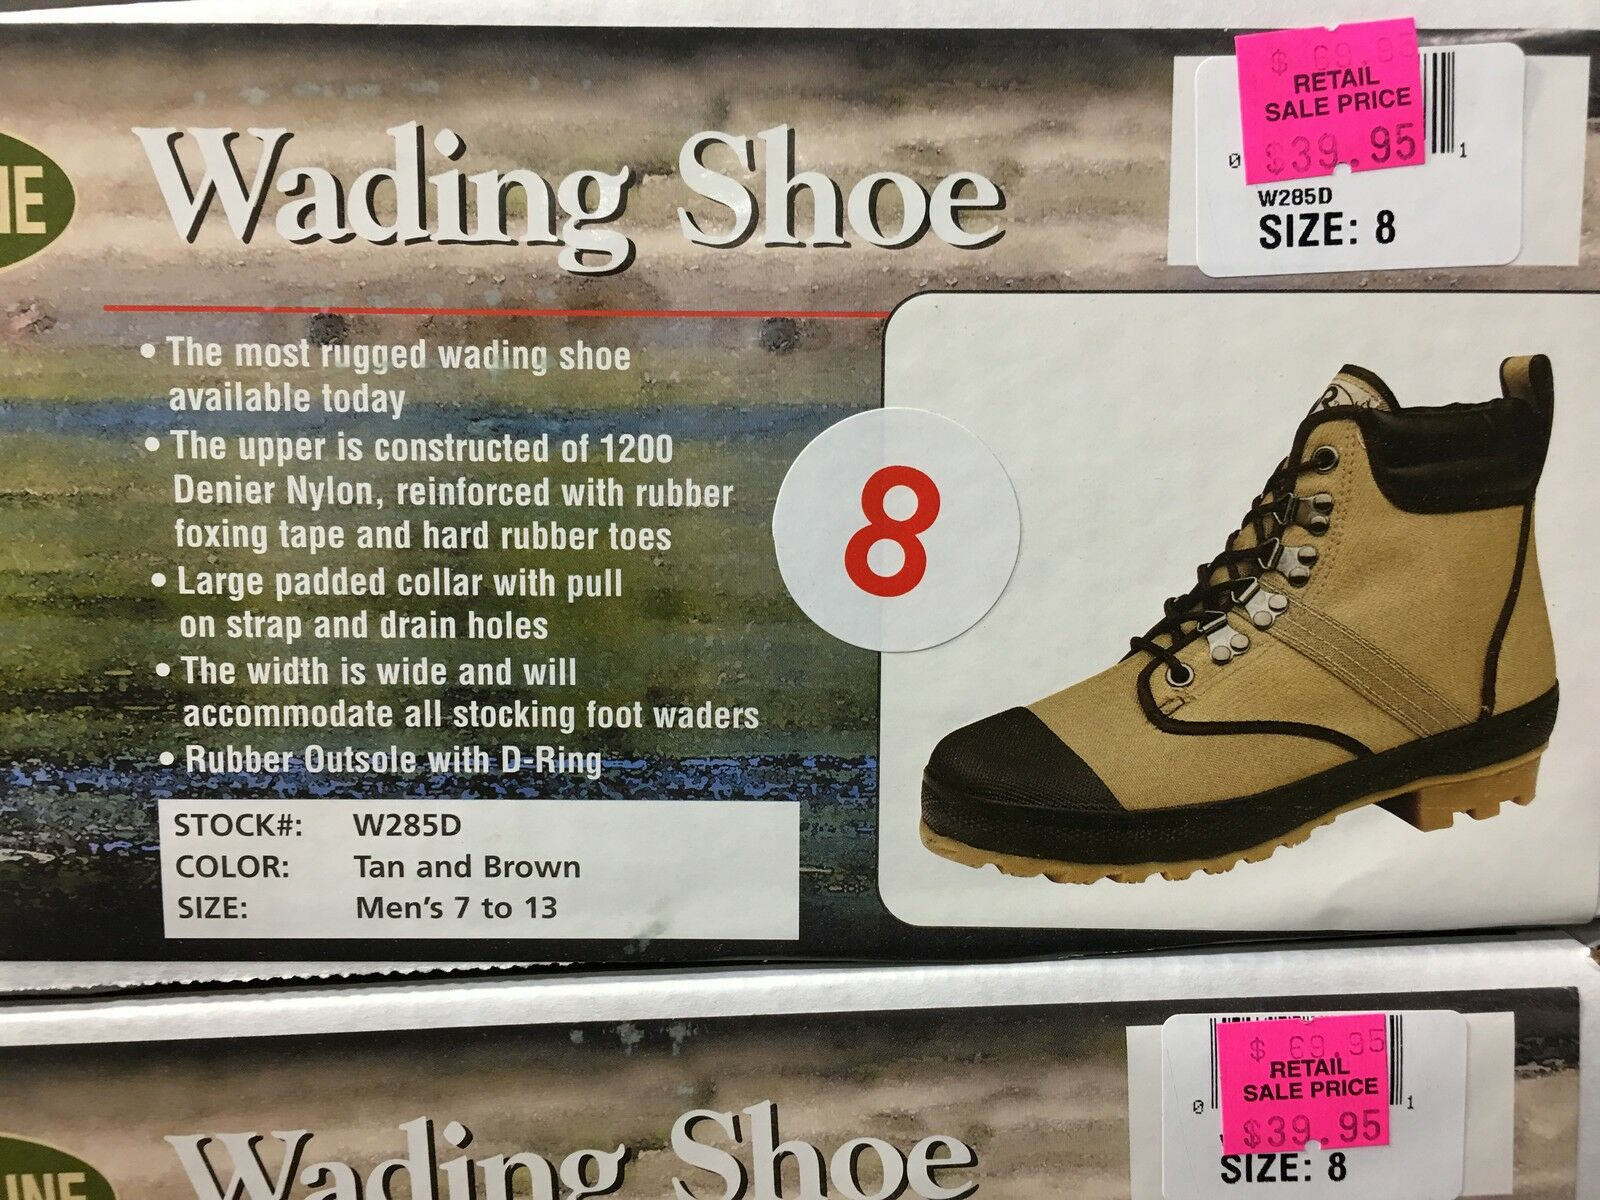 PRO LINE WADING BOOTS SHOES W285D MEN'S SIZE 8   50% OFF AMAZON PRICE    NEW